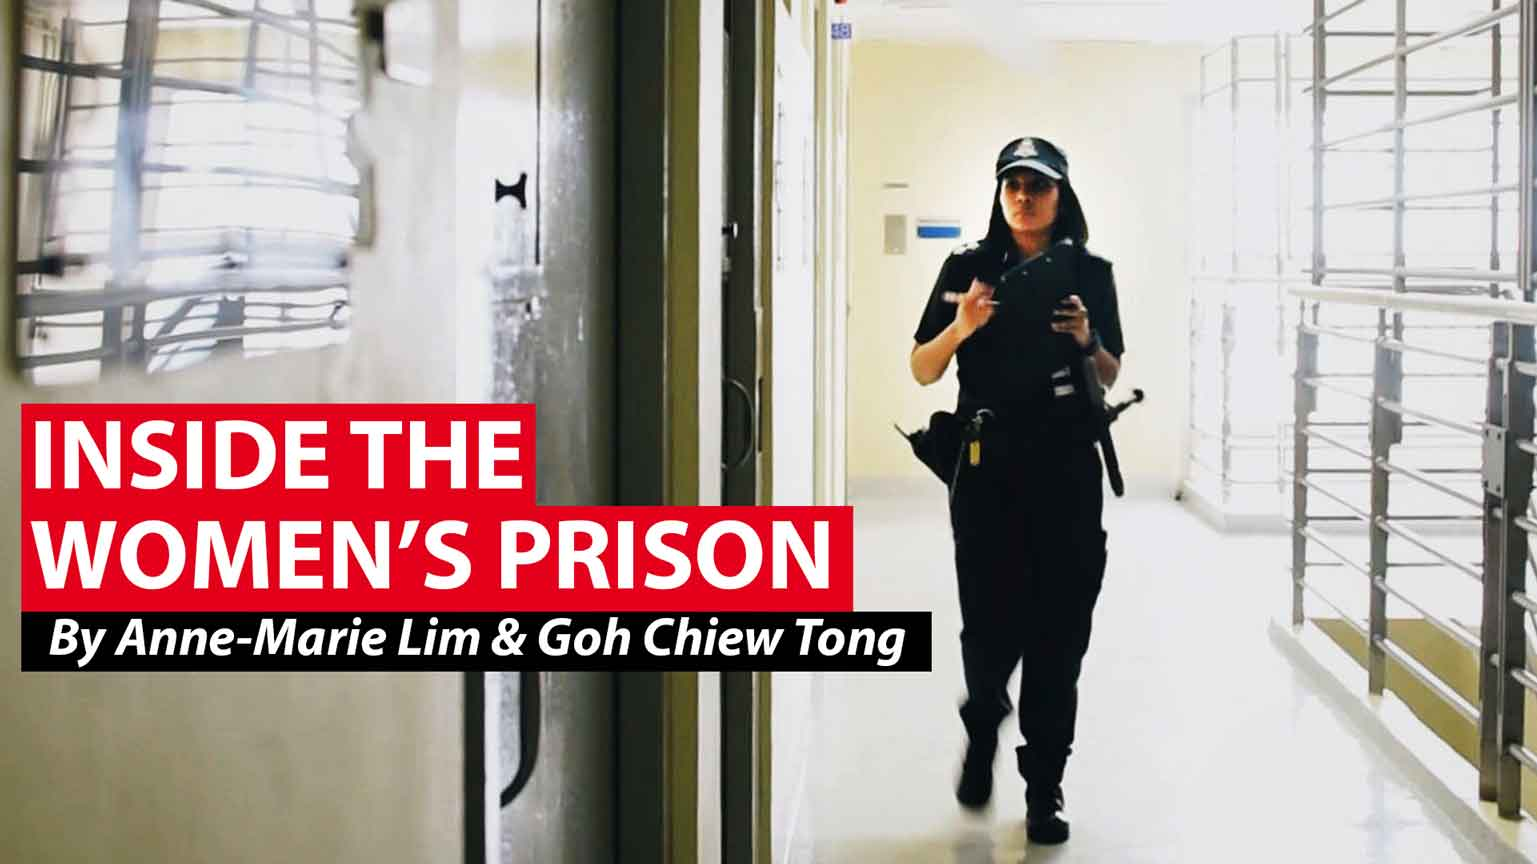 Changing lives, inside the women's prison